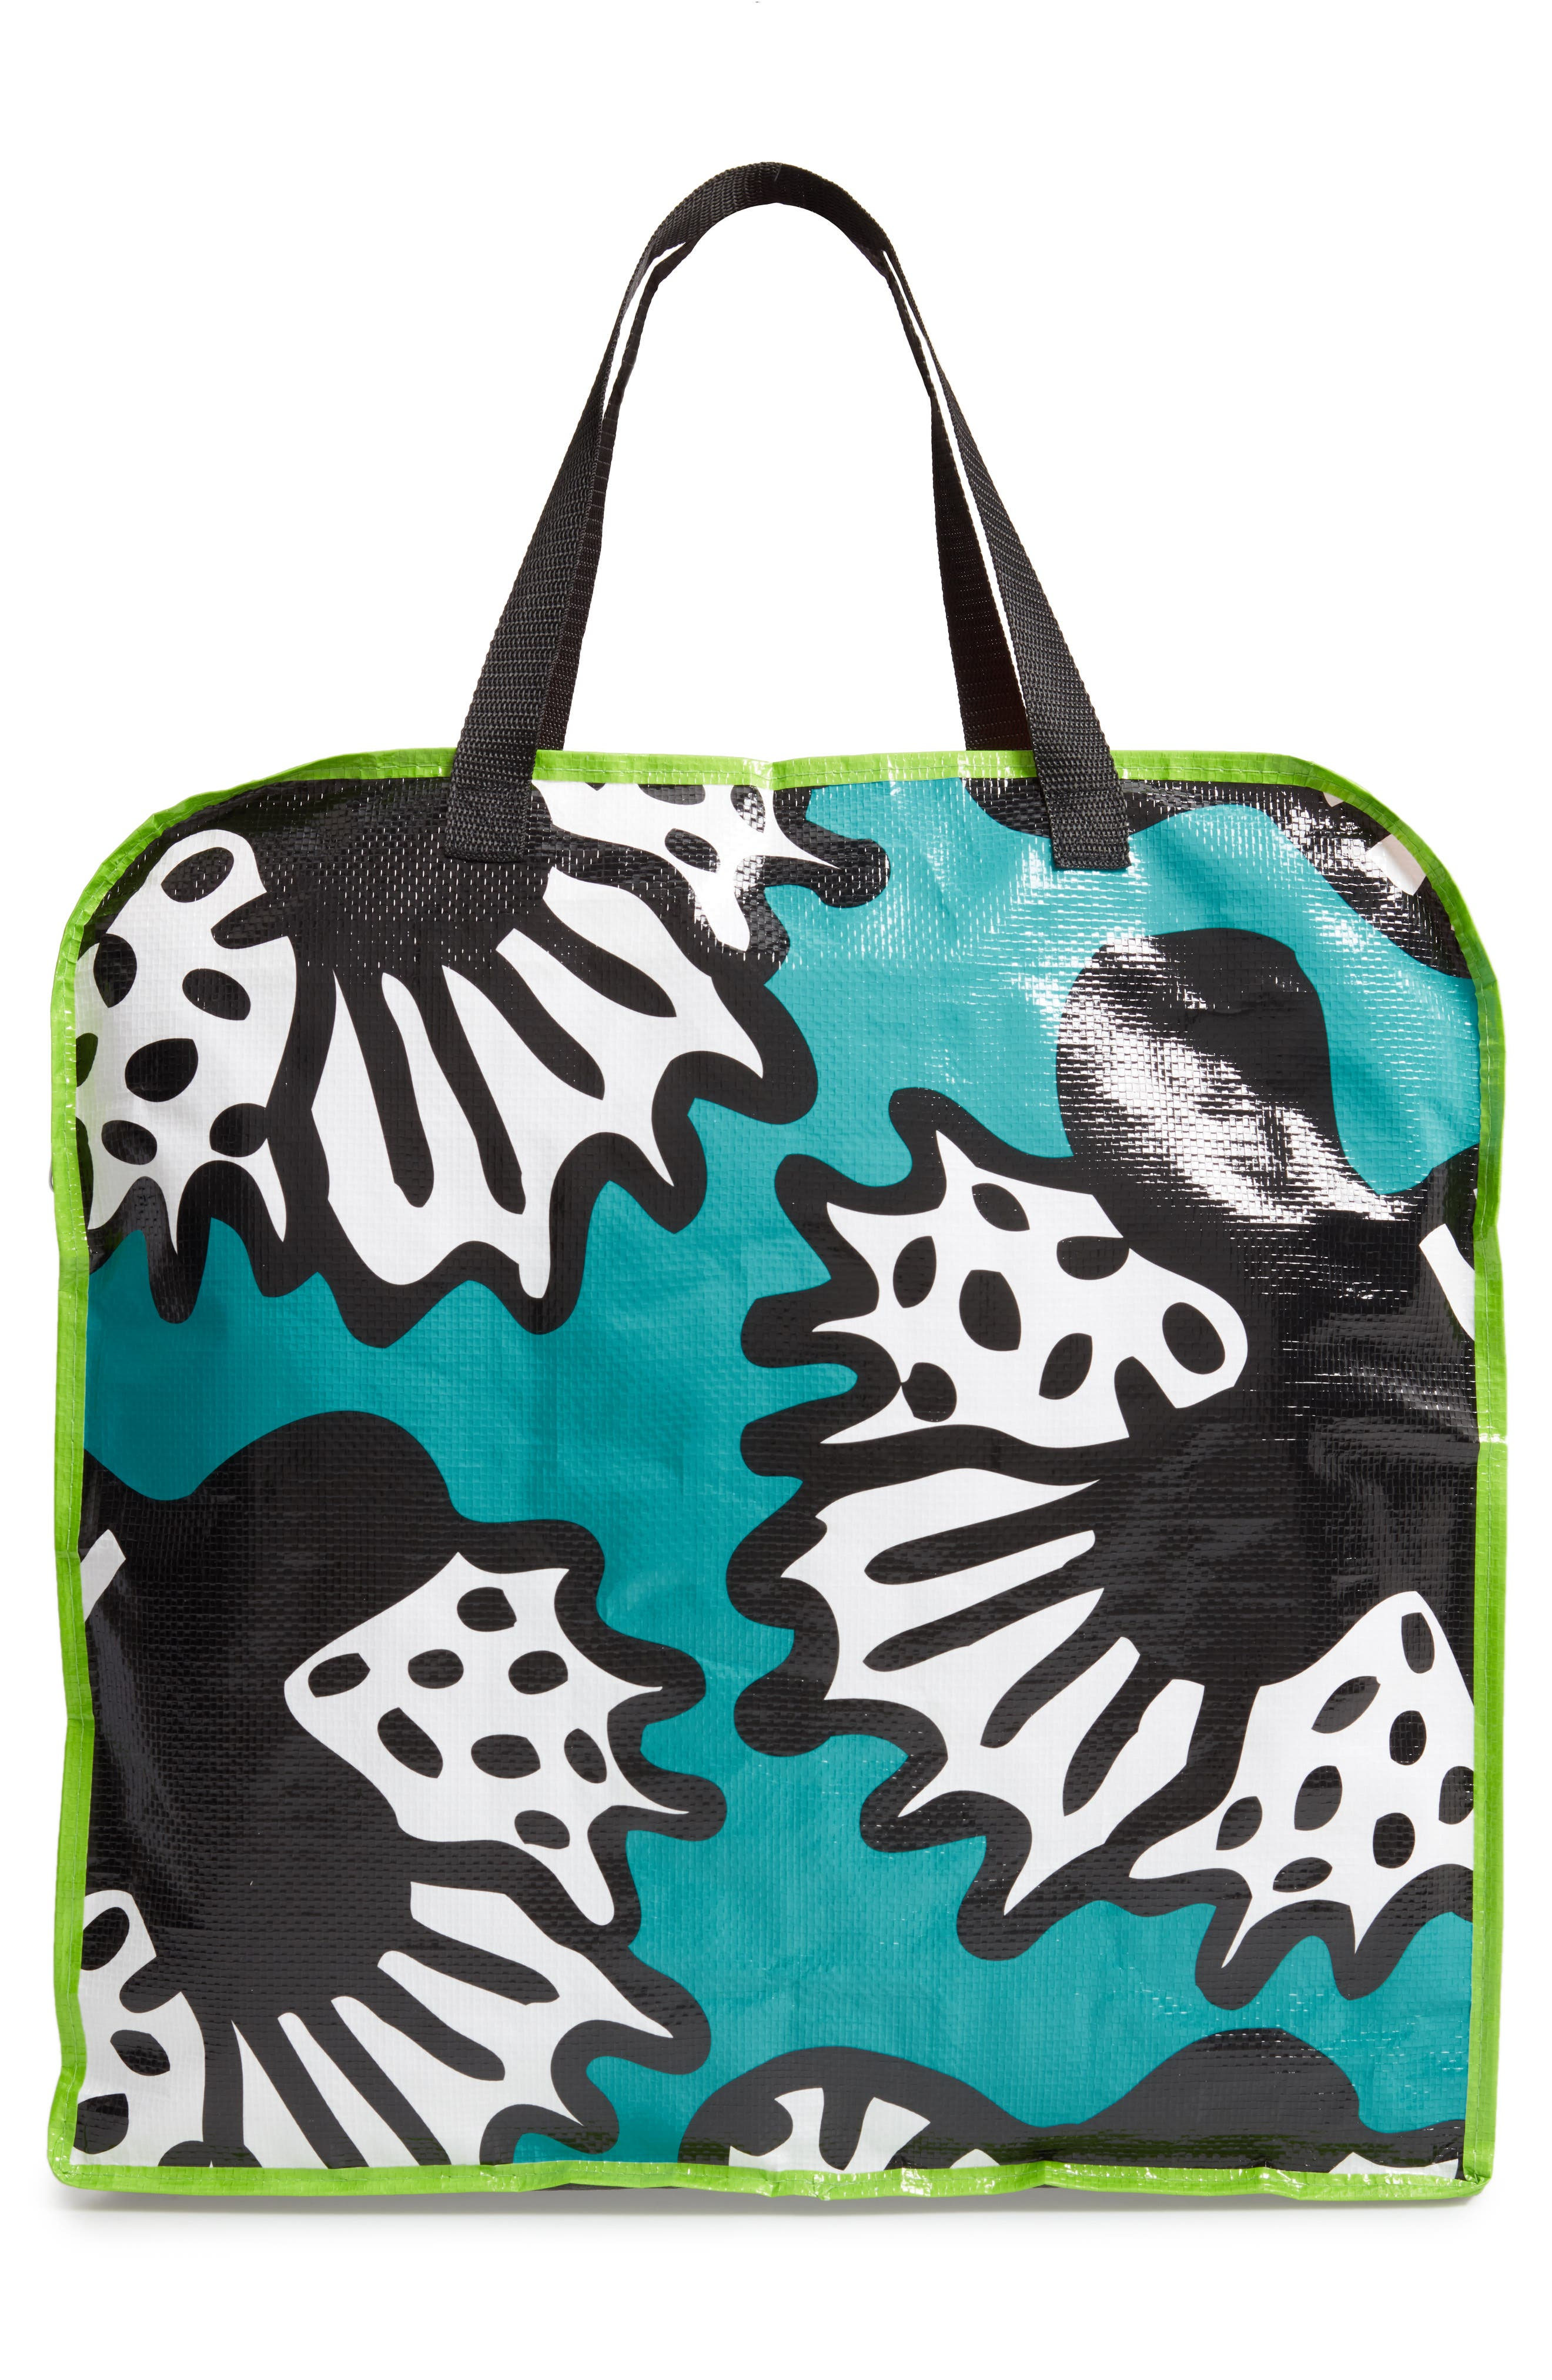 MEMPHIS Milano Butterfly Tote,                             Alternate thumbnail 3, color,                             BLUE